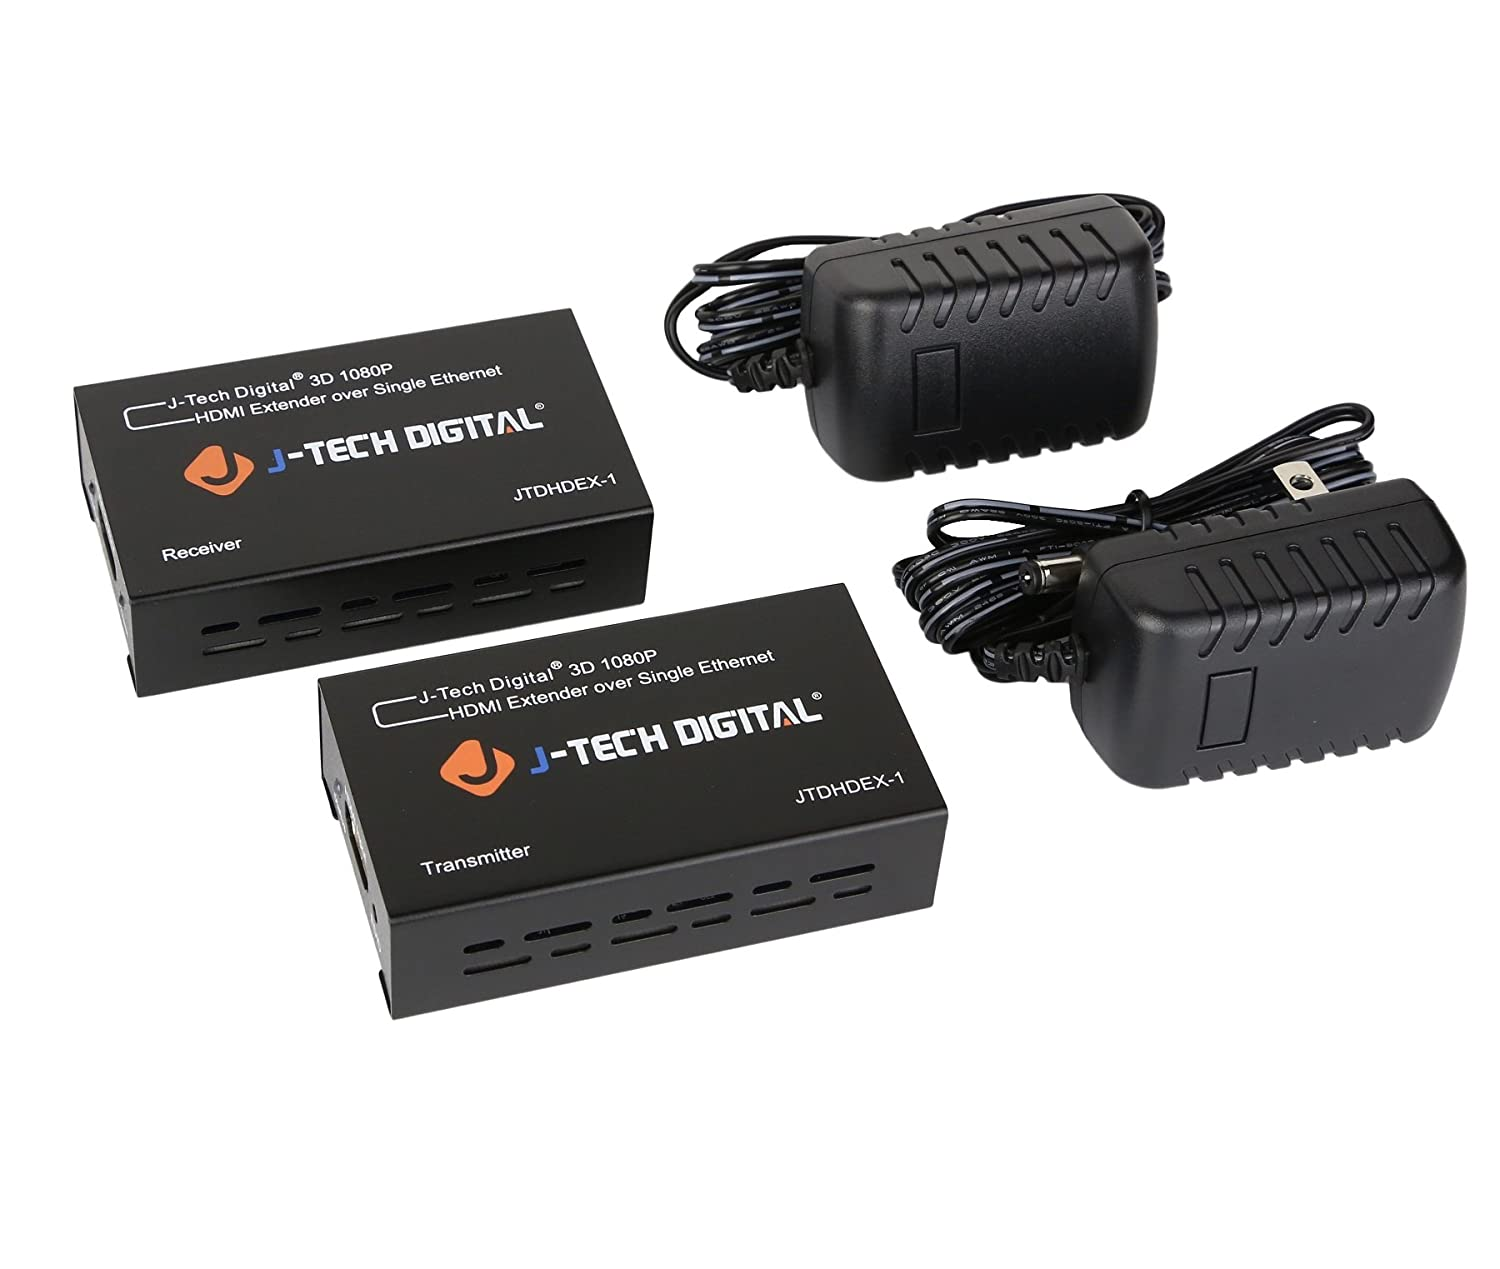 J Tech Digital Hdmi Extender 164ft 1080p Jtdhdex 1 Cat 5 Wiring Diagram For Whats Included